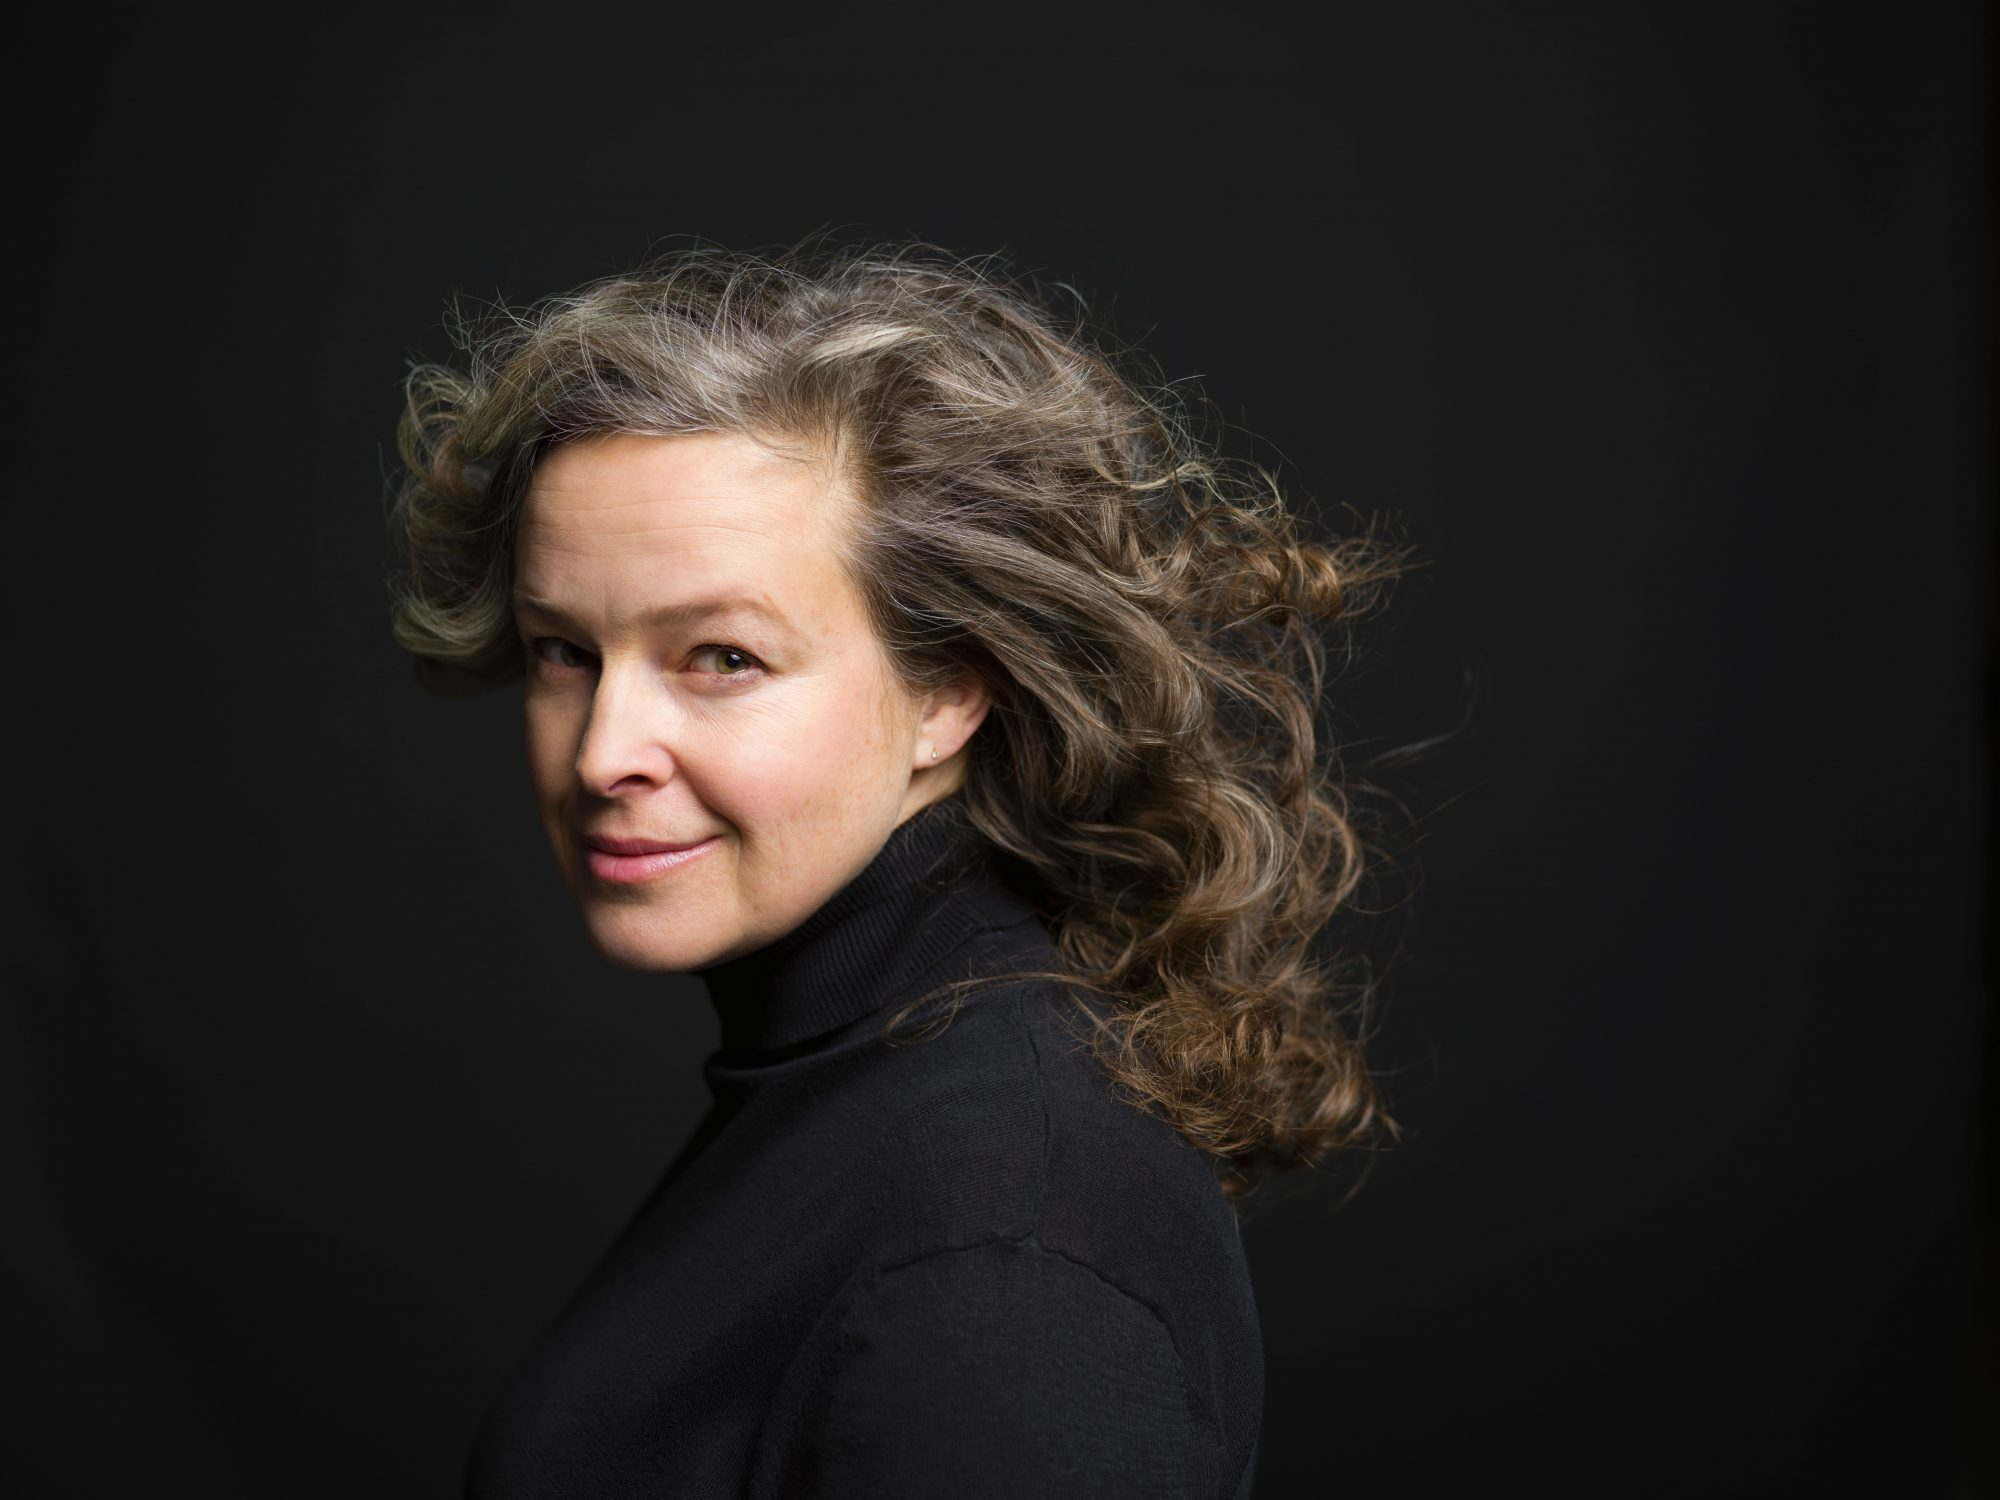 Woman with Gray Curly Hair